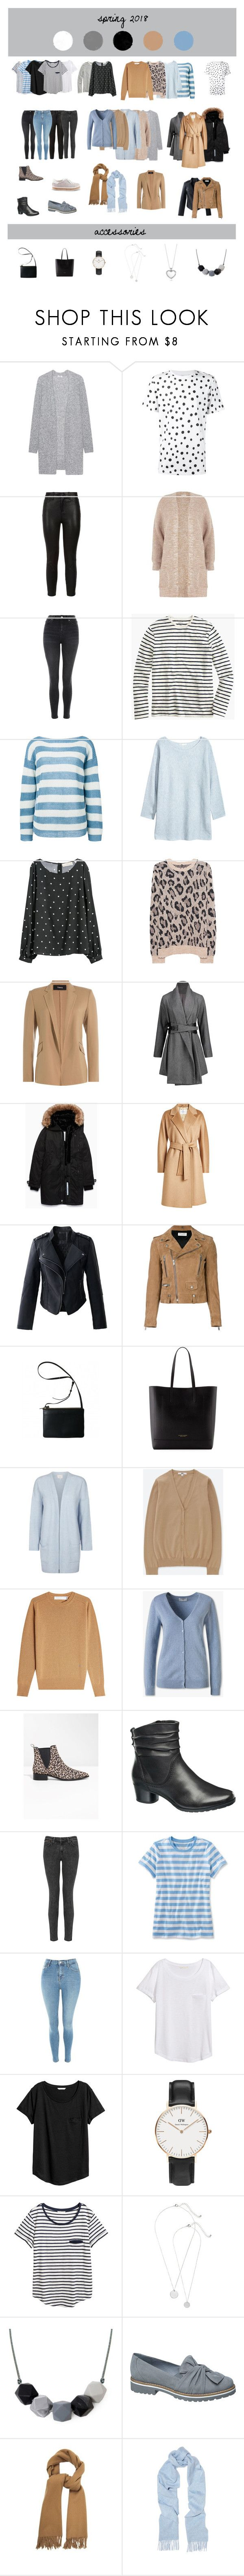 Spring Capsule Wardrobe 2018 by tanja-rode on Polyvore featuring мода, Victoria Beckham, Noted*, Acne Studios, Uniqlo, R13, River Island, Ermanno Scervino, Stampd and L.L.Bean